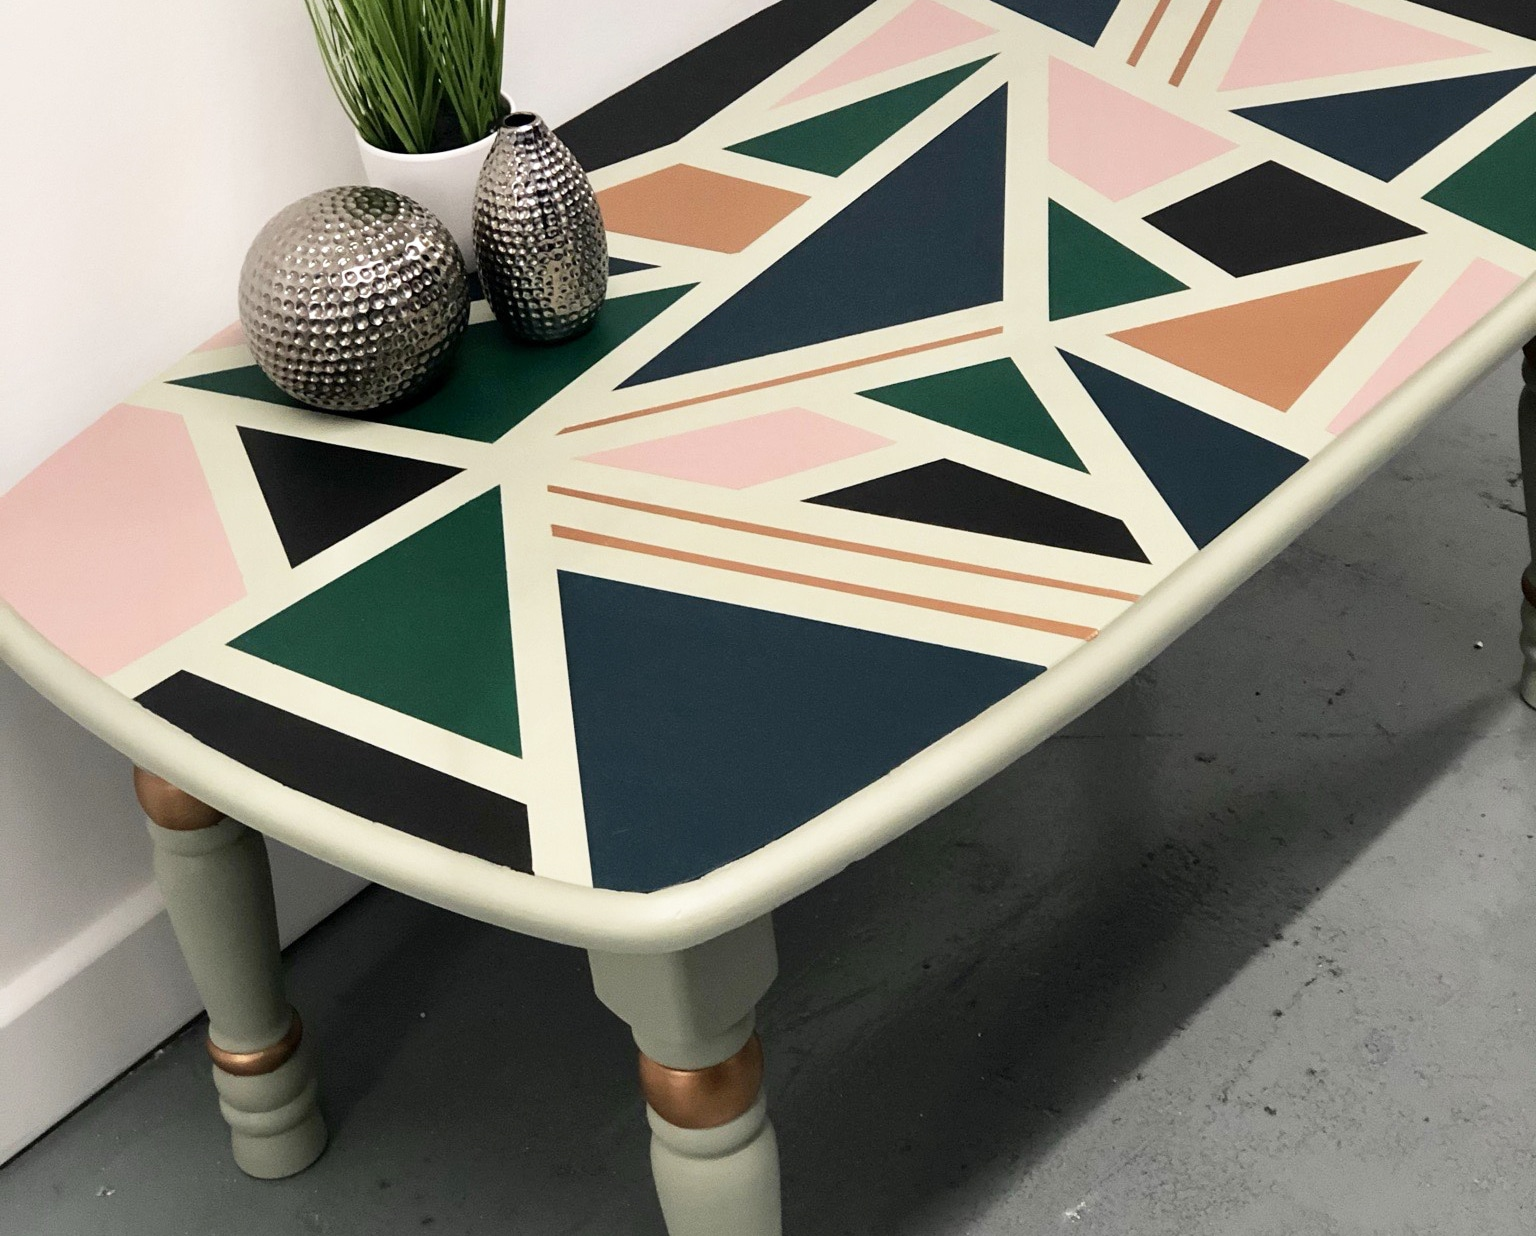 A coffee table with colourful geometric patterns